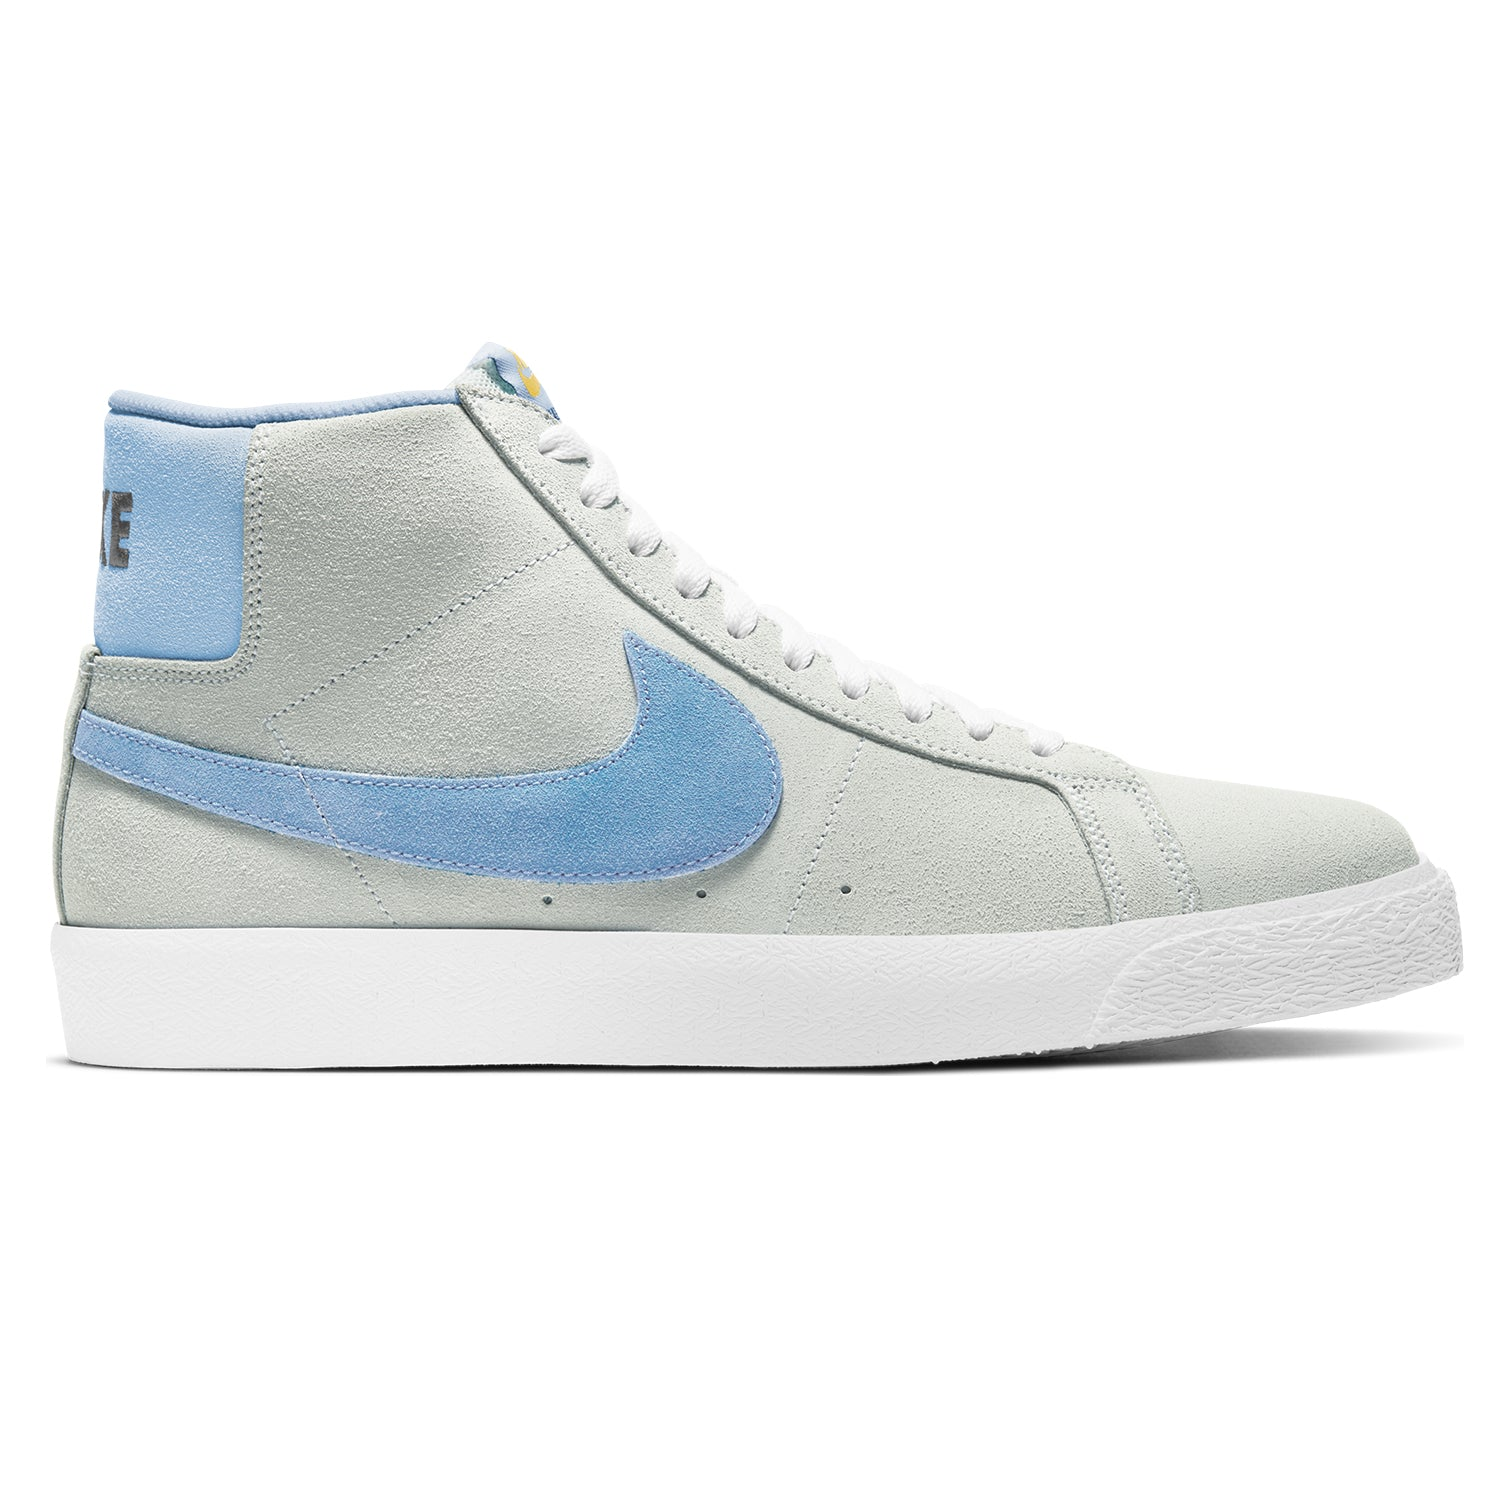 Nike SB Zoom Blazer Mid Photon Dust/Psychic Blue